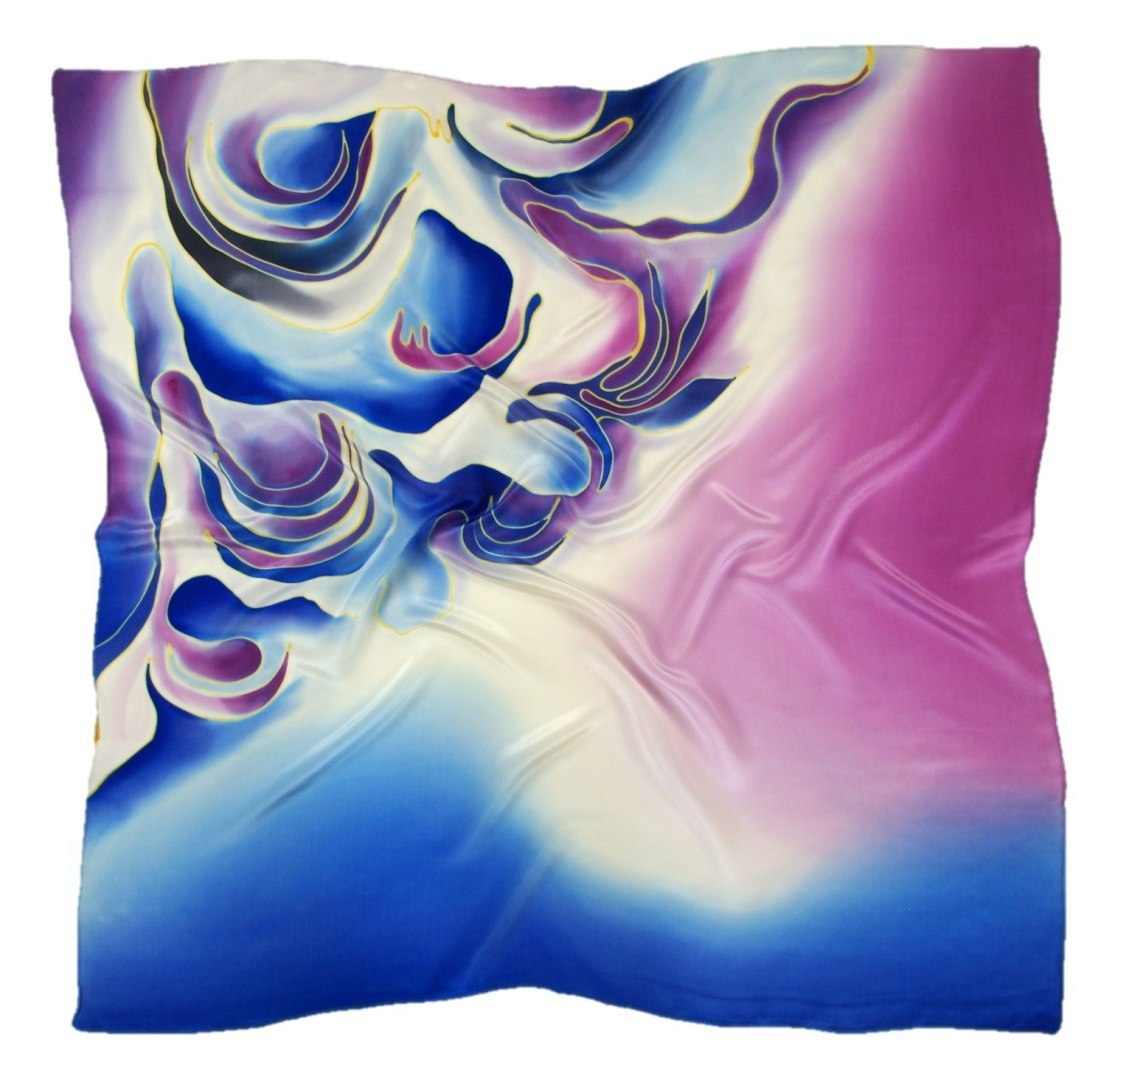 AM-341 Hand-painted silk scarf, 90x90cm